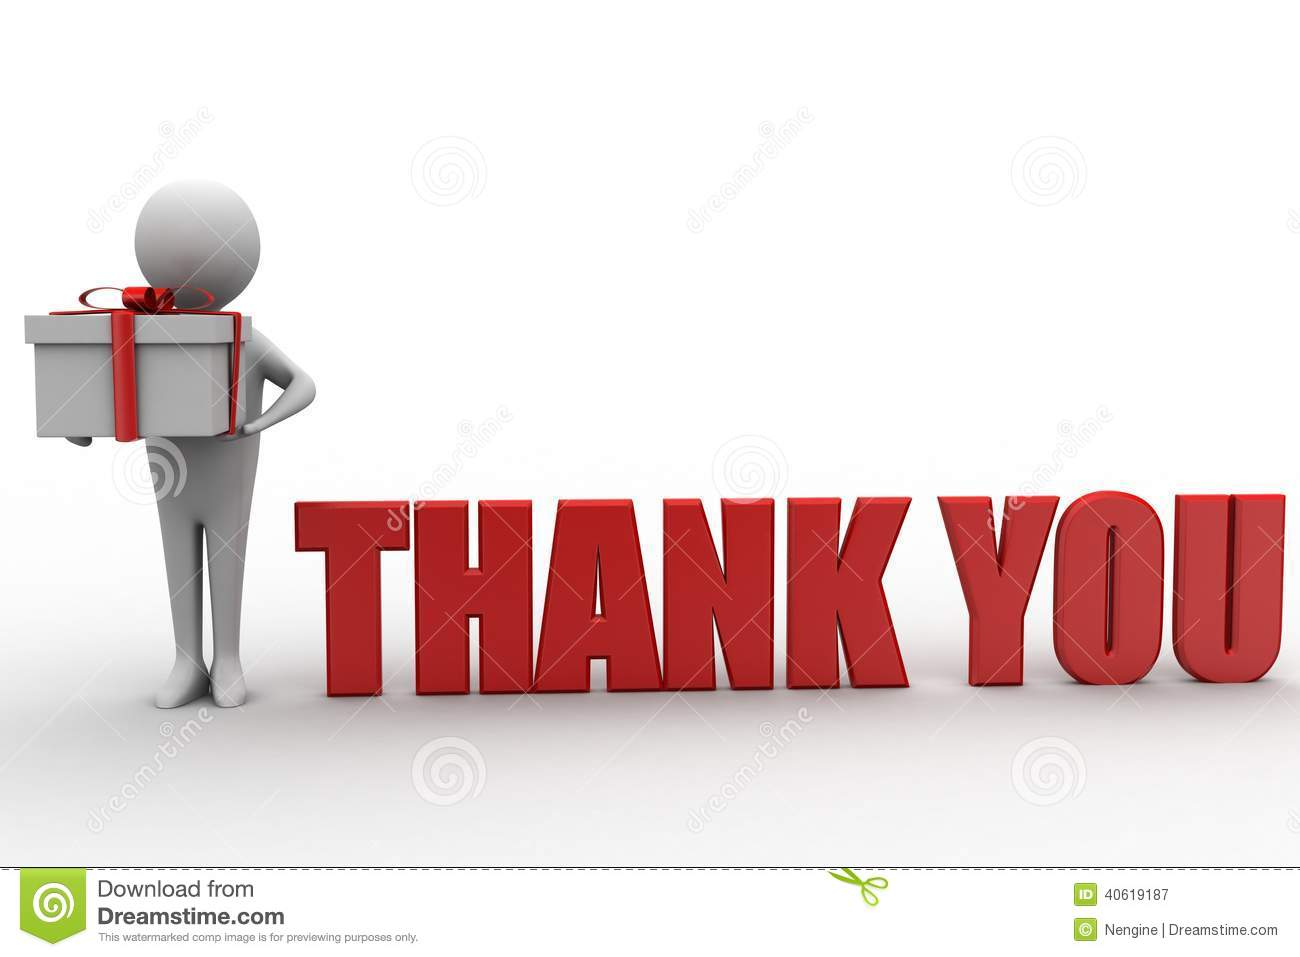 Royalty Free Stock Photography: Thank you illustration with 3d man ...